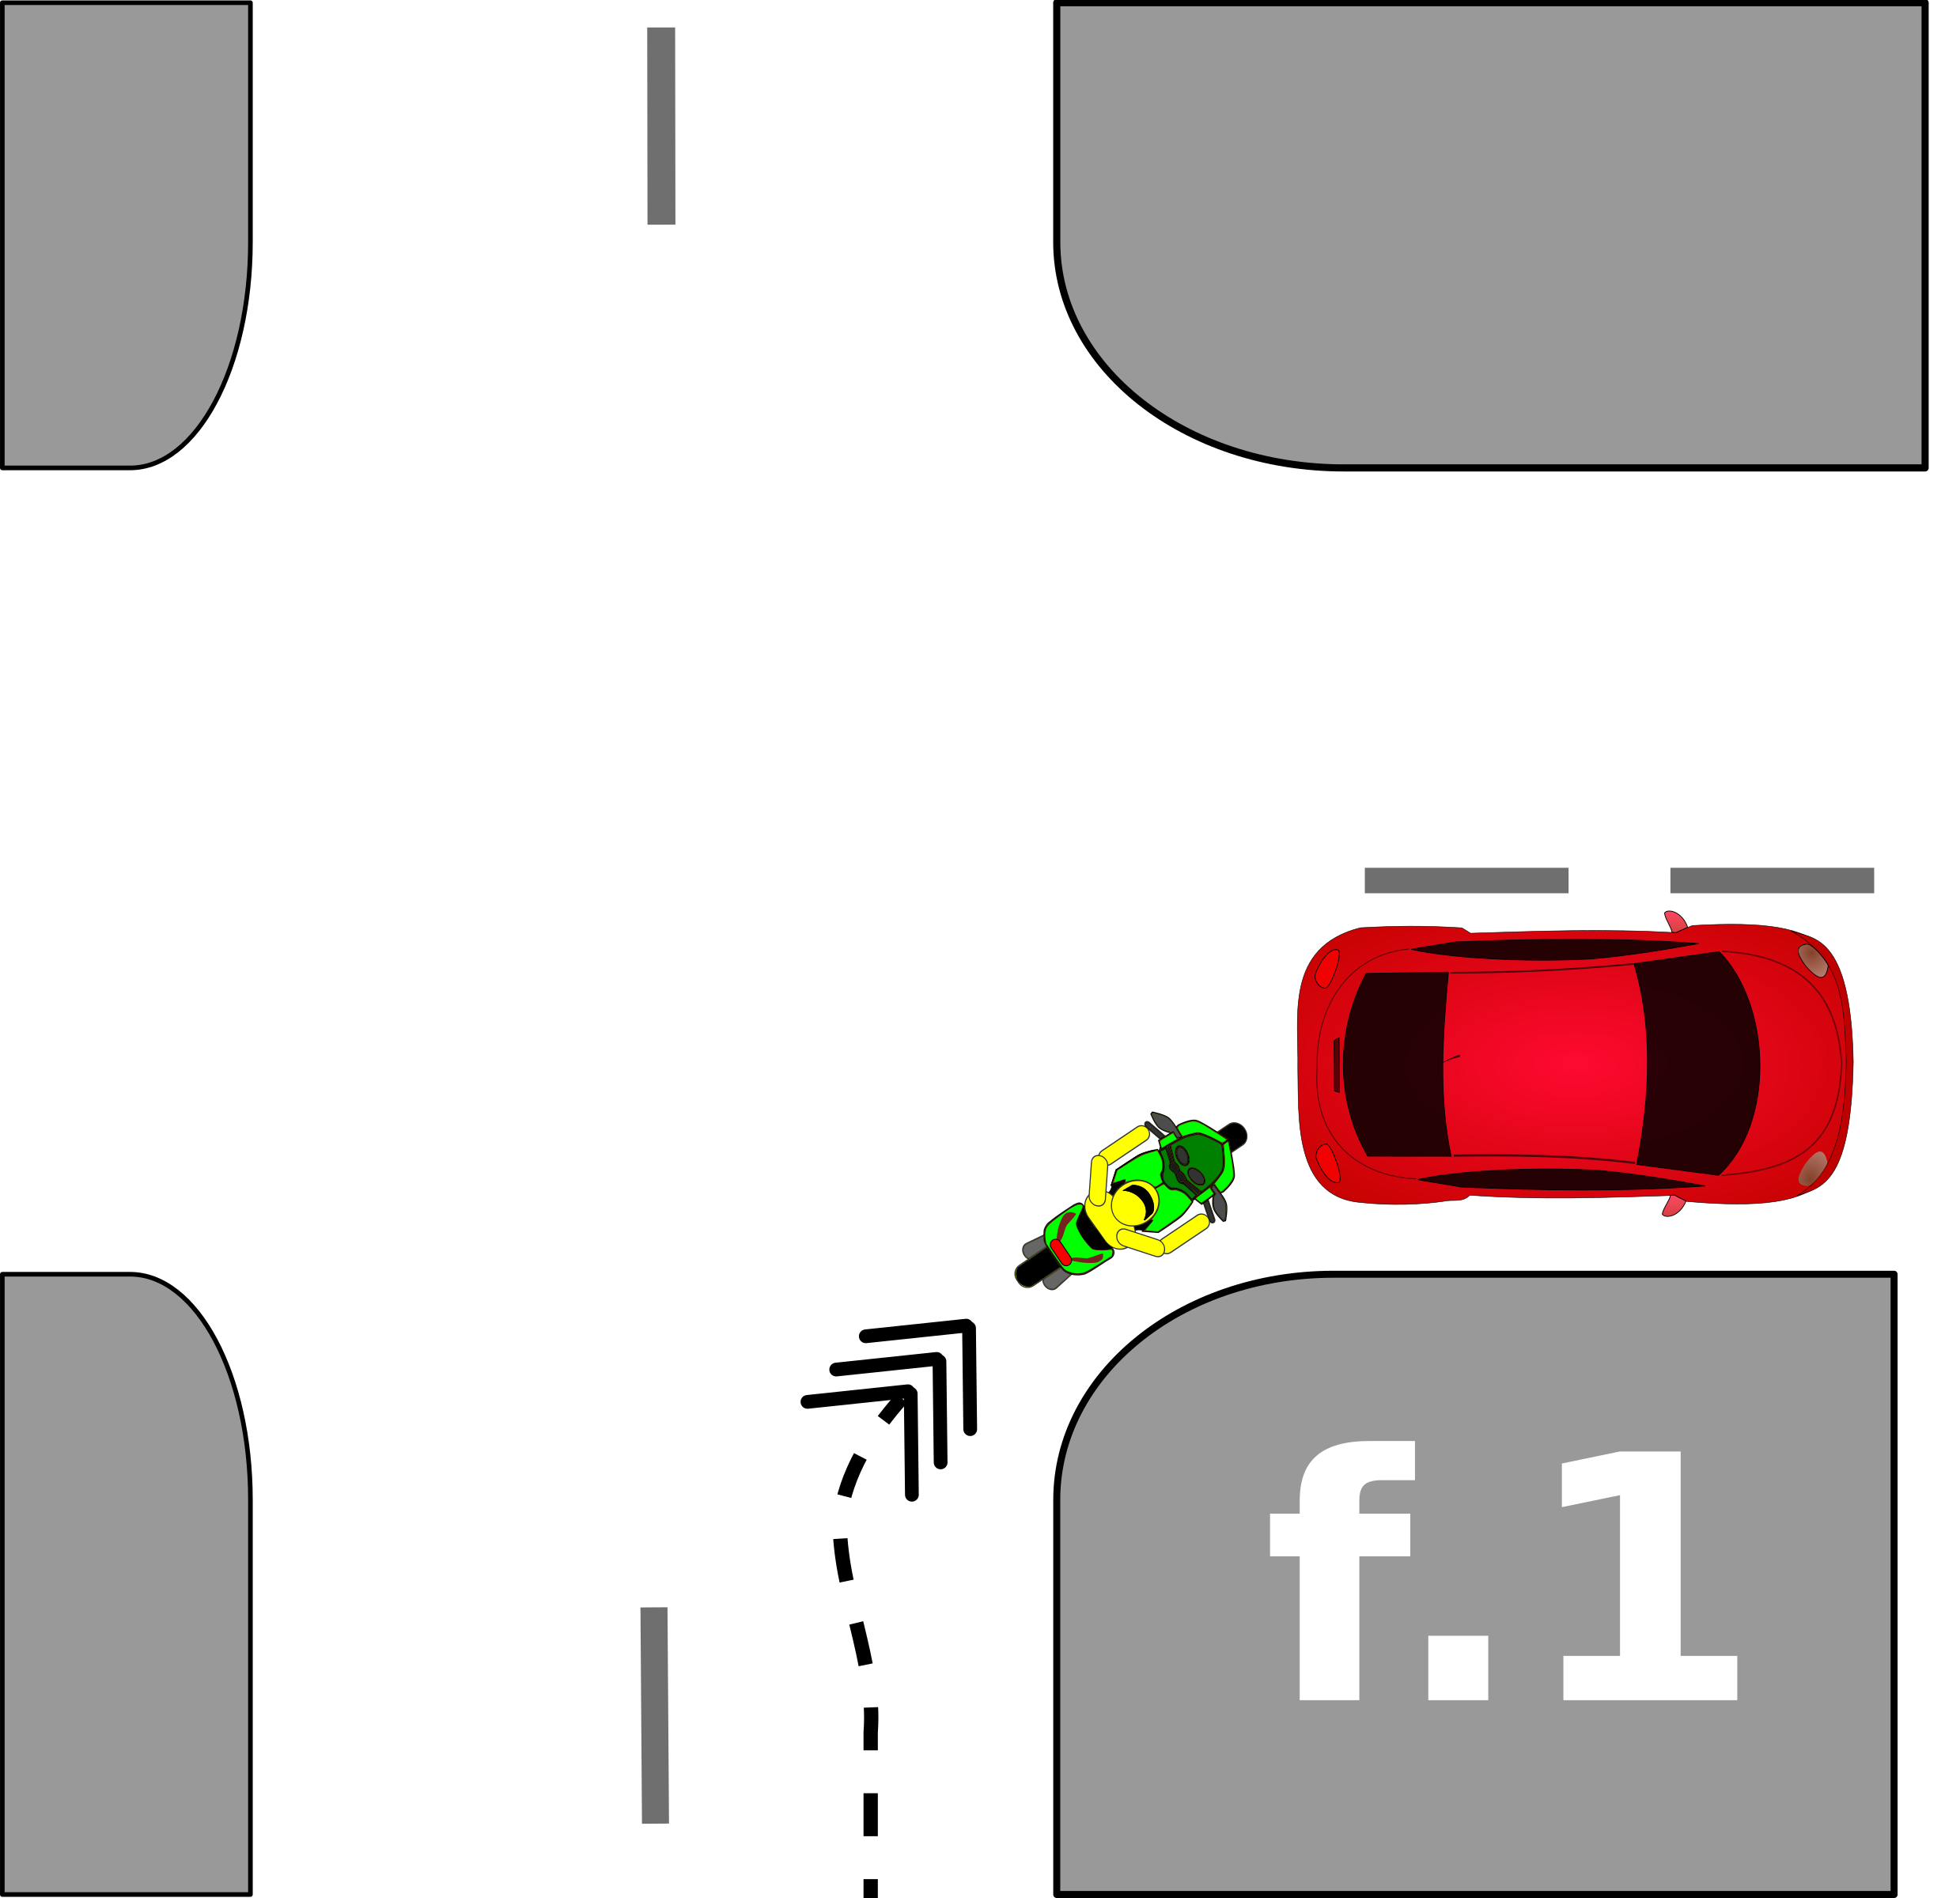 traffic accident pictograms f.1 by Gusta